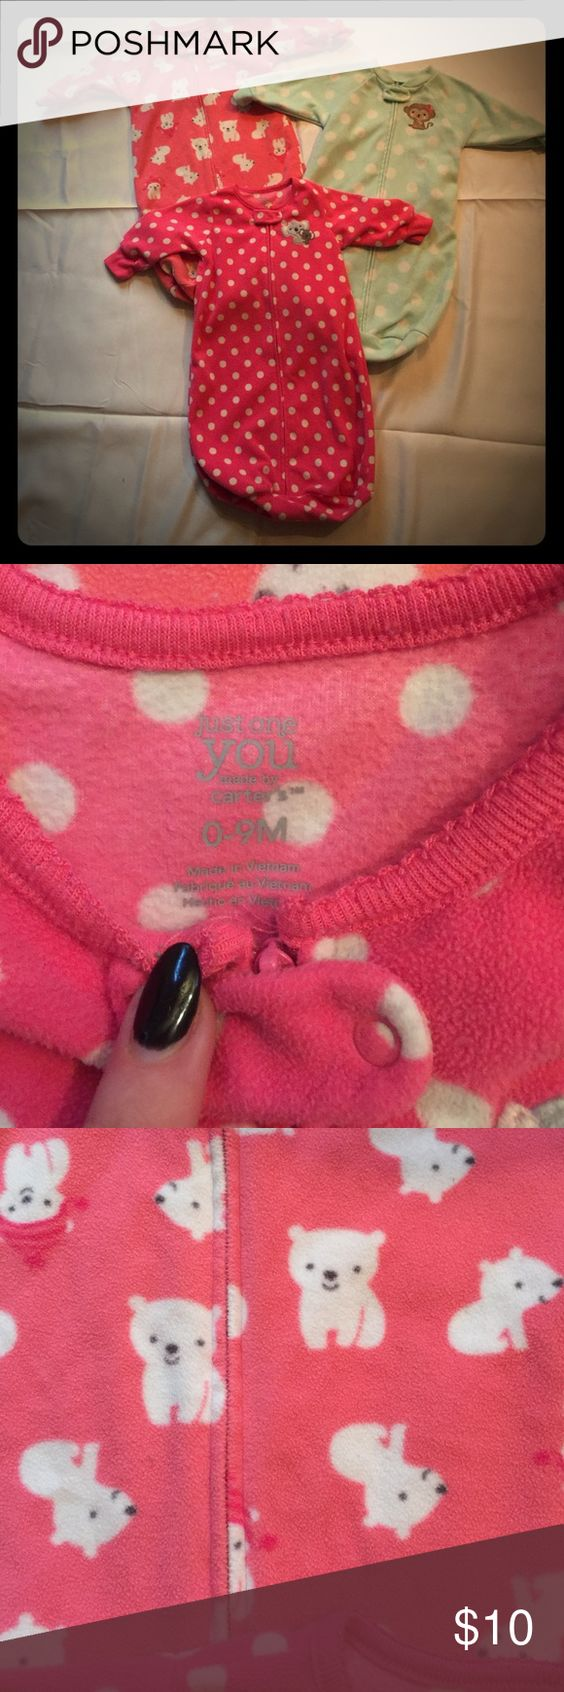 Sleep sac LOT of 3 pieces👑 CARTERS child of mine little baby girls sleep sac lot of three pieces. Previously used, please review pictures. These sac are life savers!! When the babies are to young for blankets, this helps them stay warm and get a solid night sleep💁🏼💗🙏🏼💤 carters Pajamas Sleep Sacks